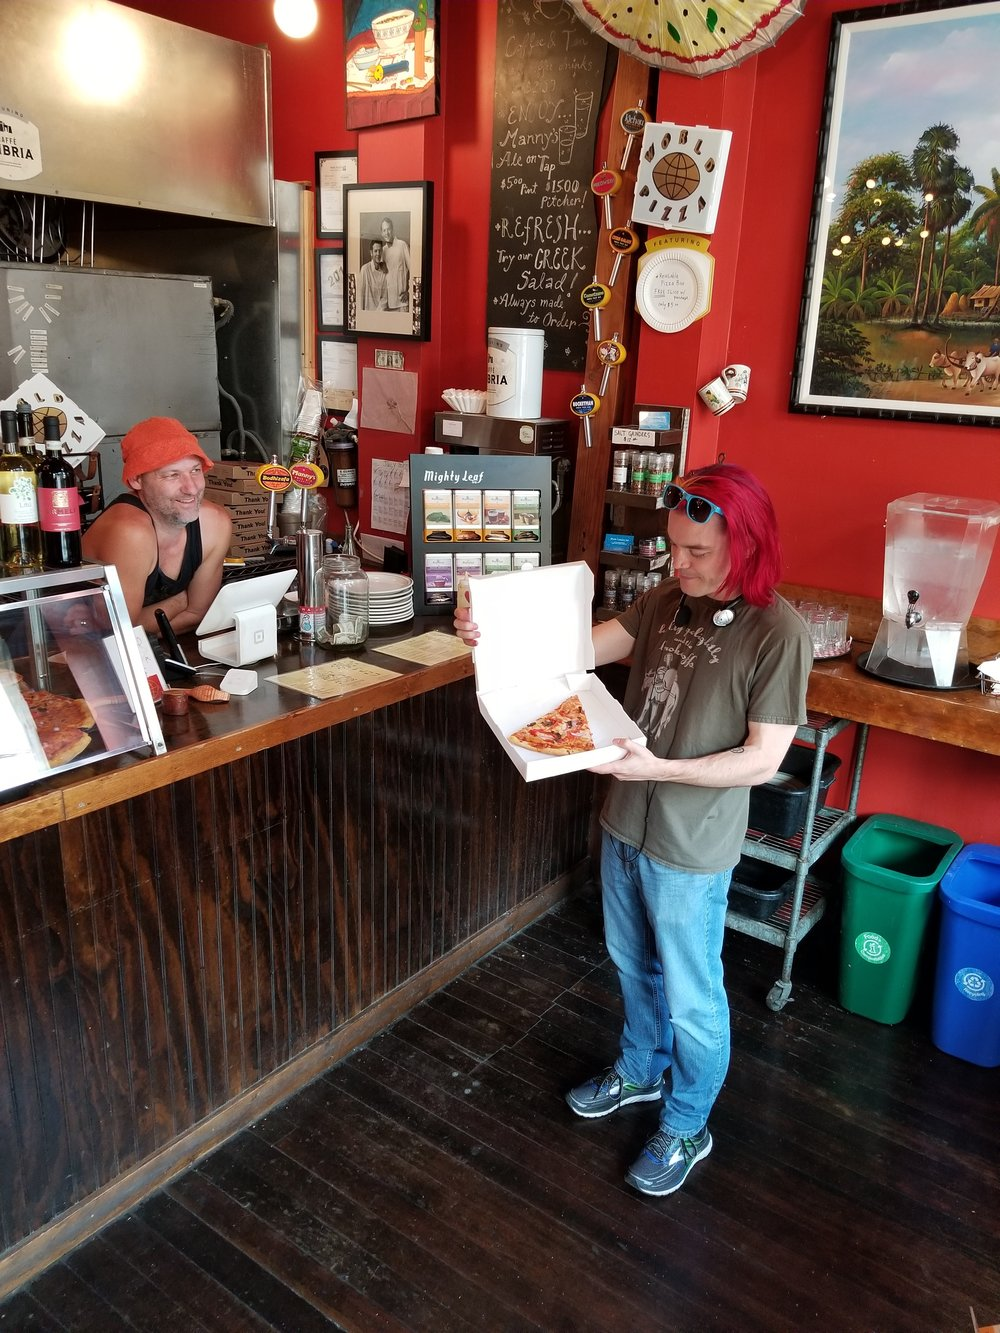 World Pizza of Seattle is happy to be able to serve their customers pizza in a reusable DaVinci pizza box...